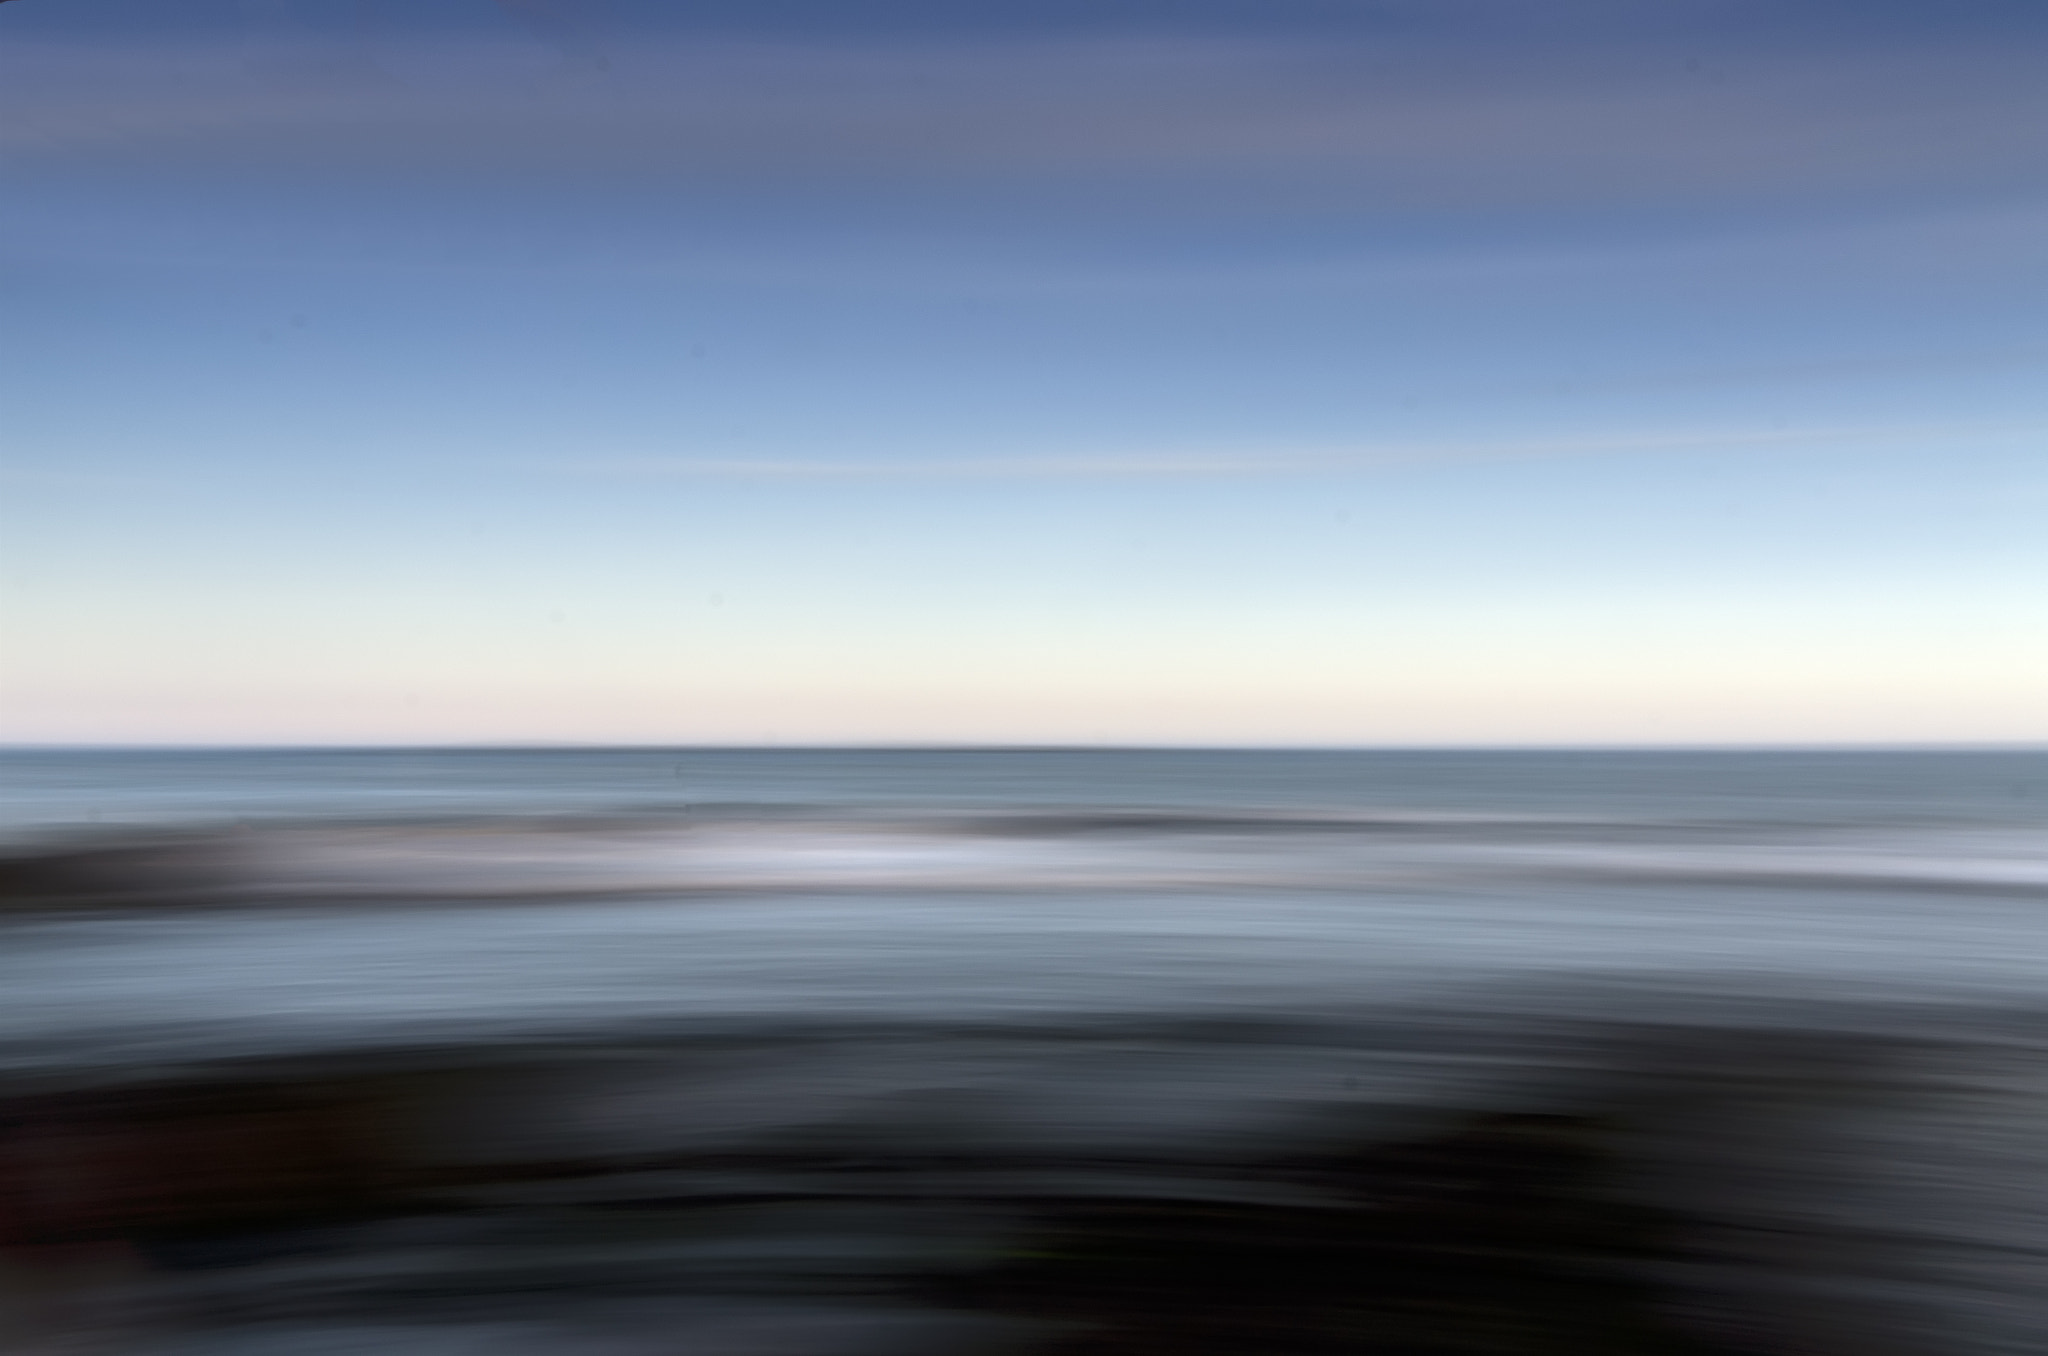 Photograph Blue abstract by Daniel Schwabe on 500px